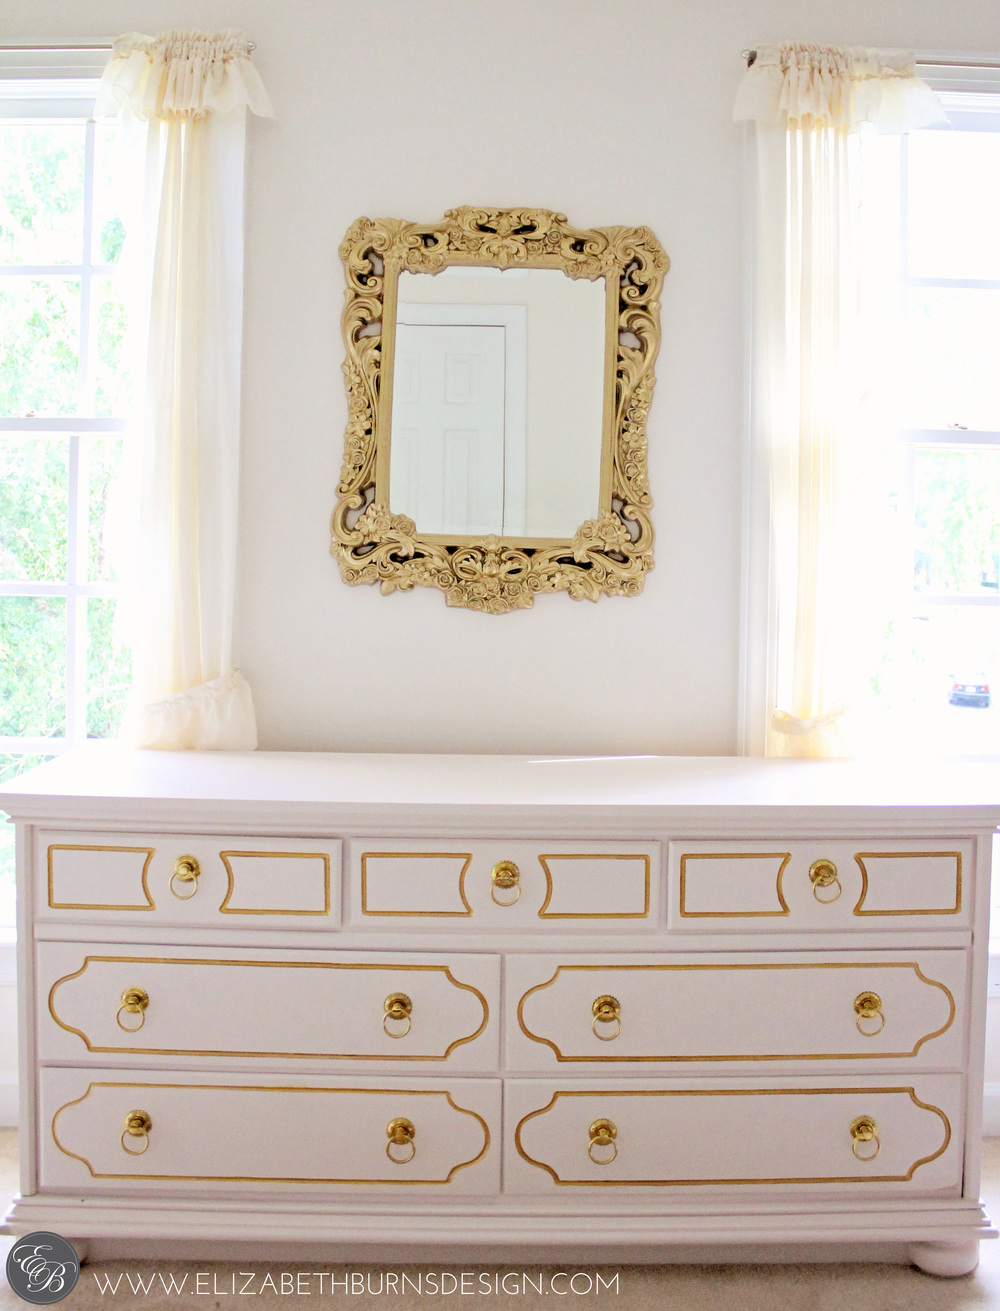 Craigslist Luxe For Less Pink And Gold Dresser